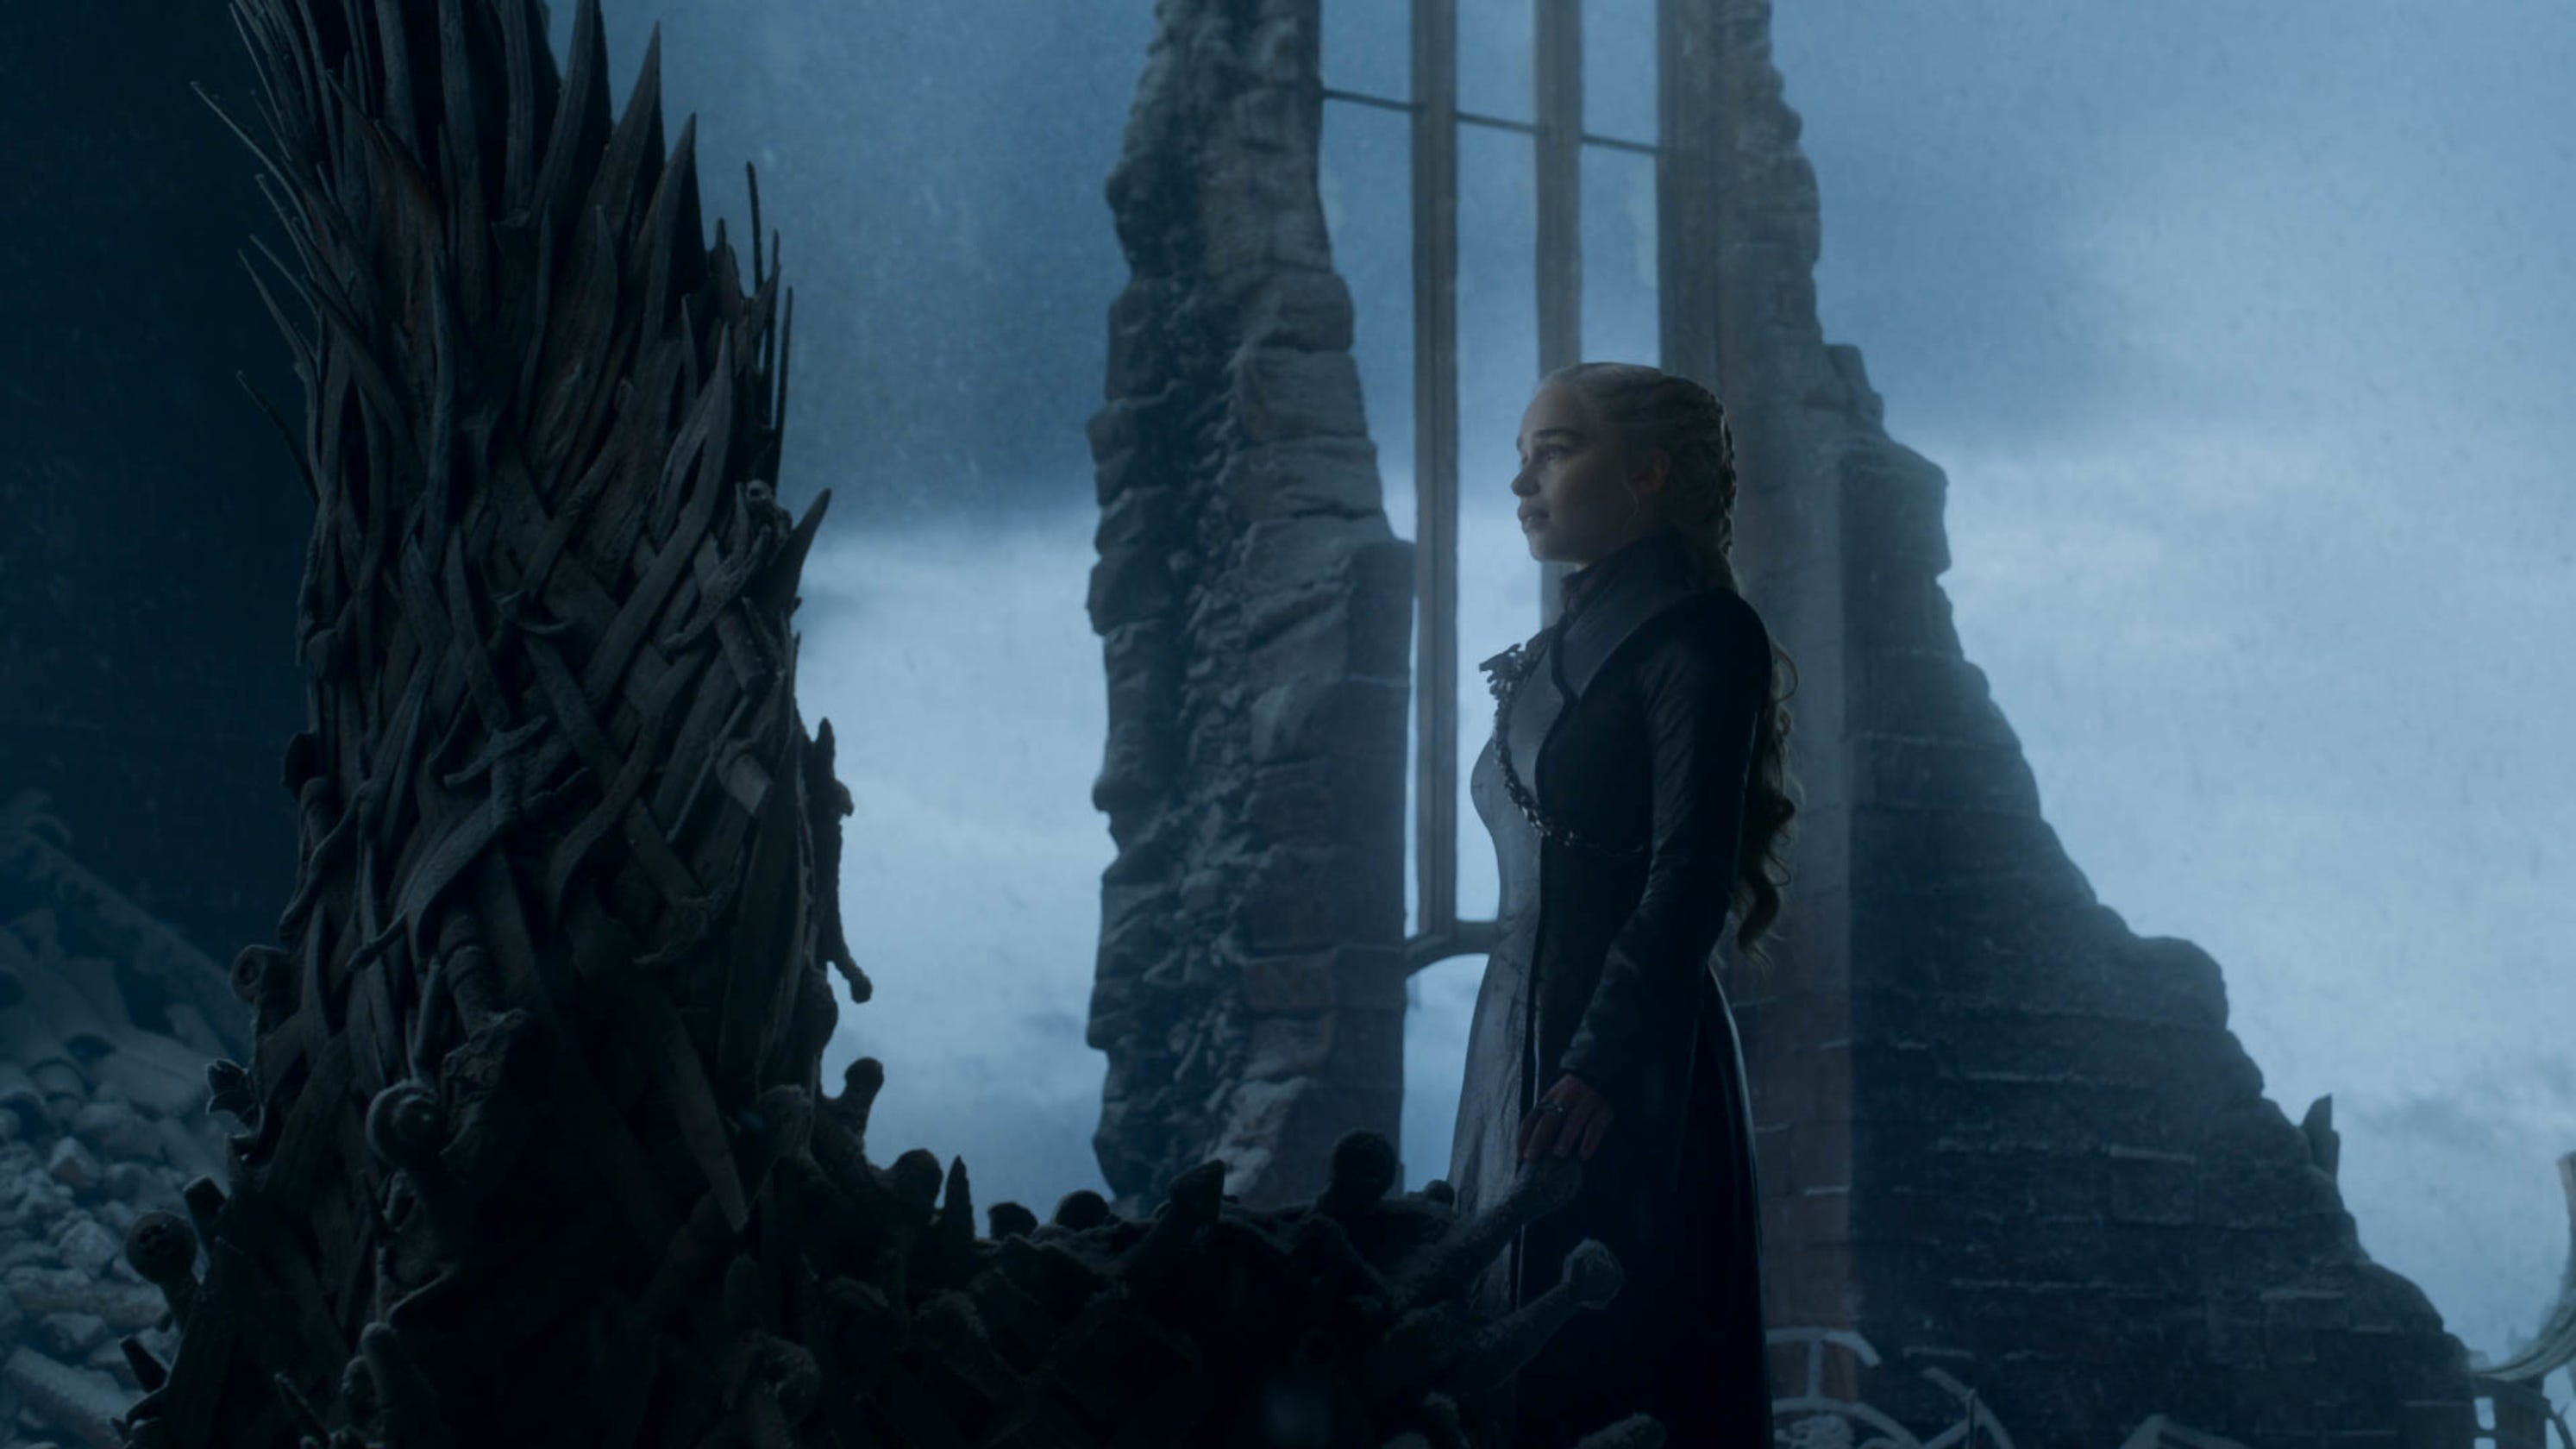 Game of Thrones' finale: Did the end ruin show? Reddit fans